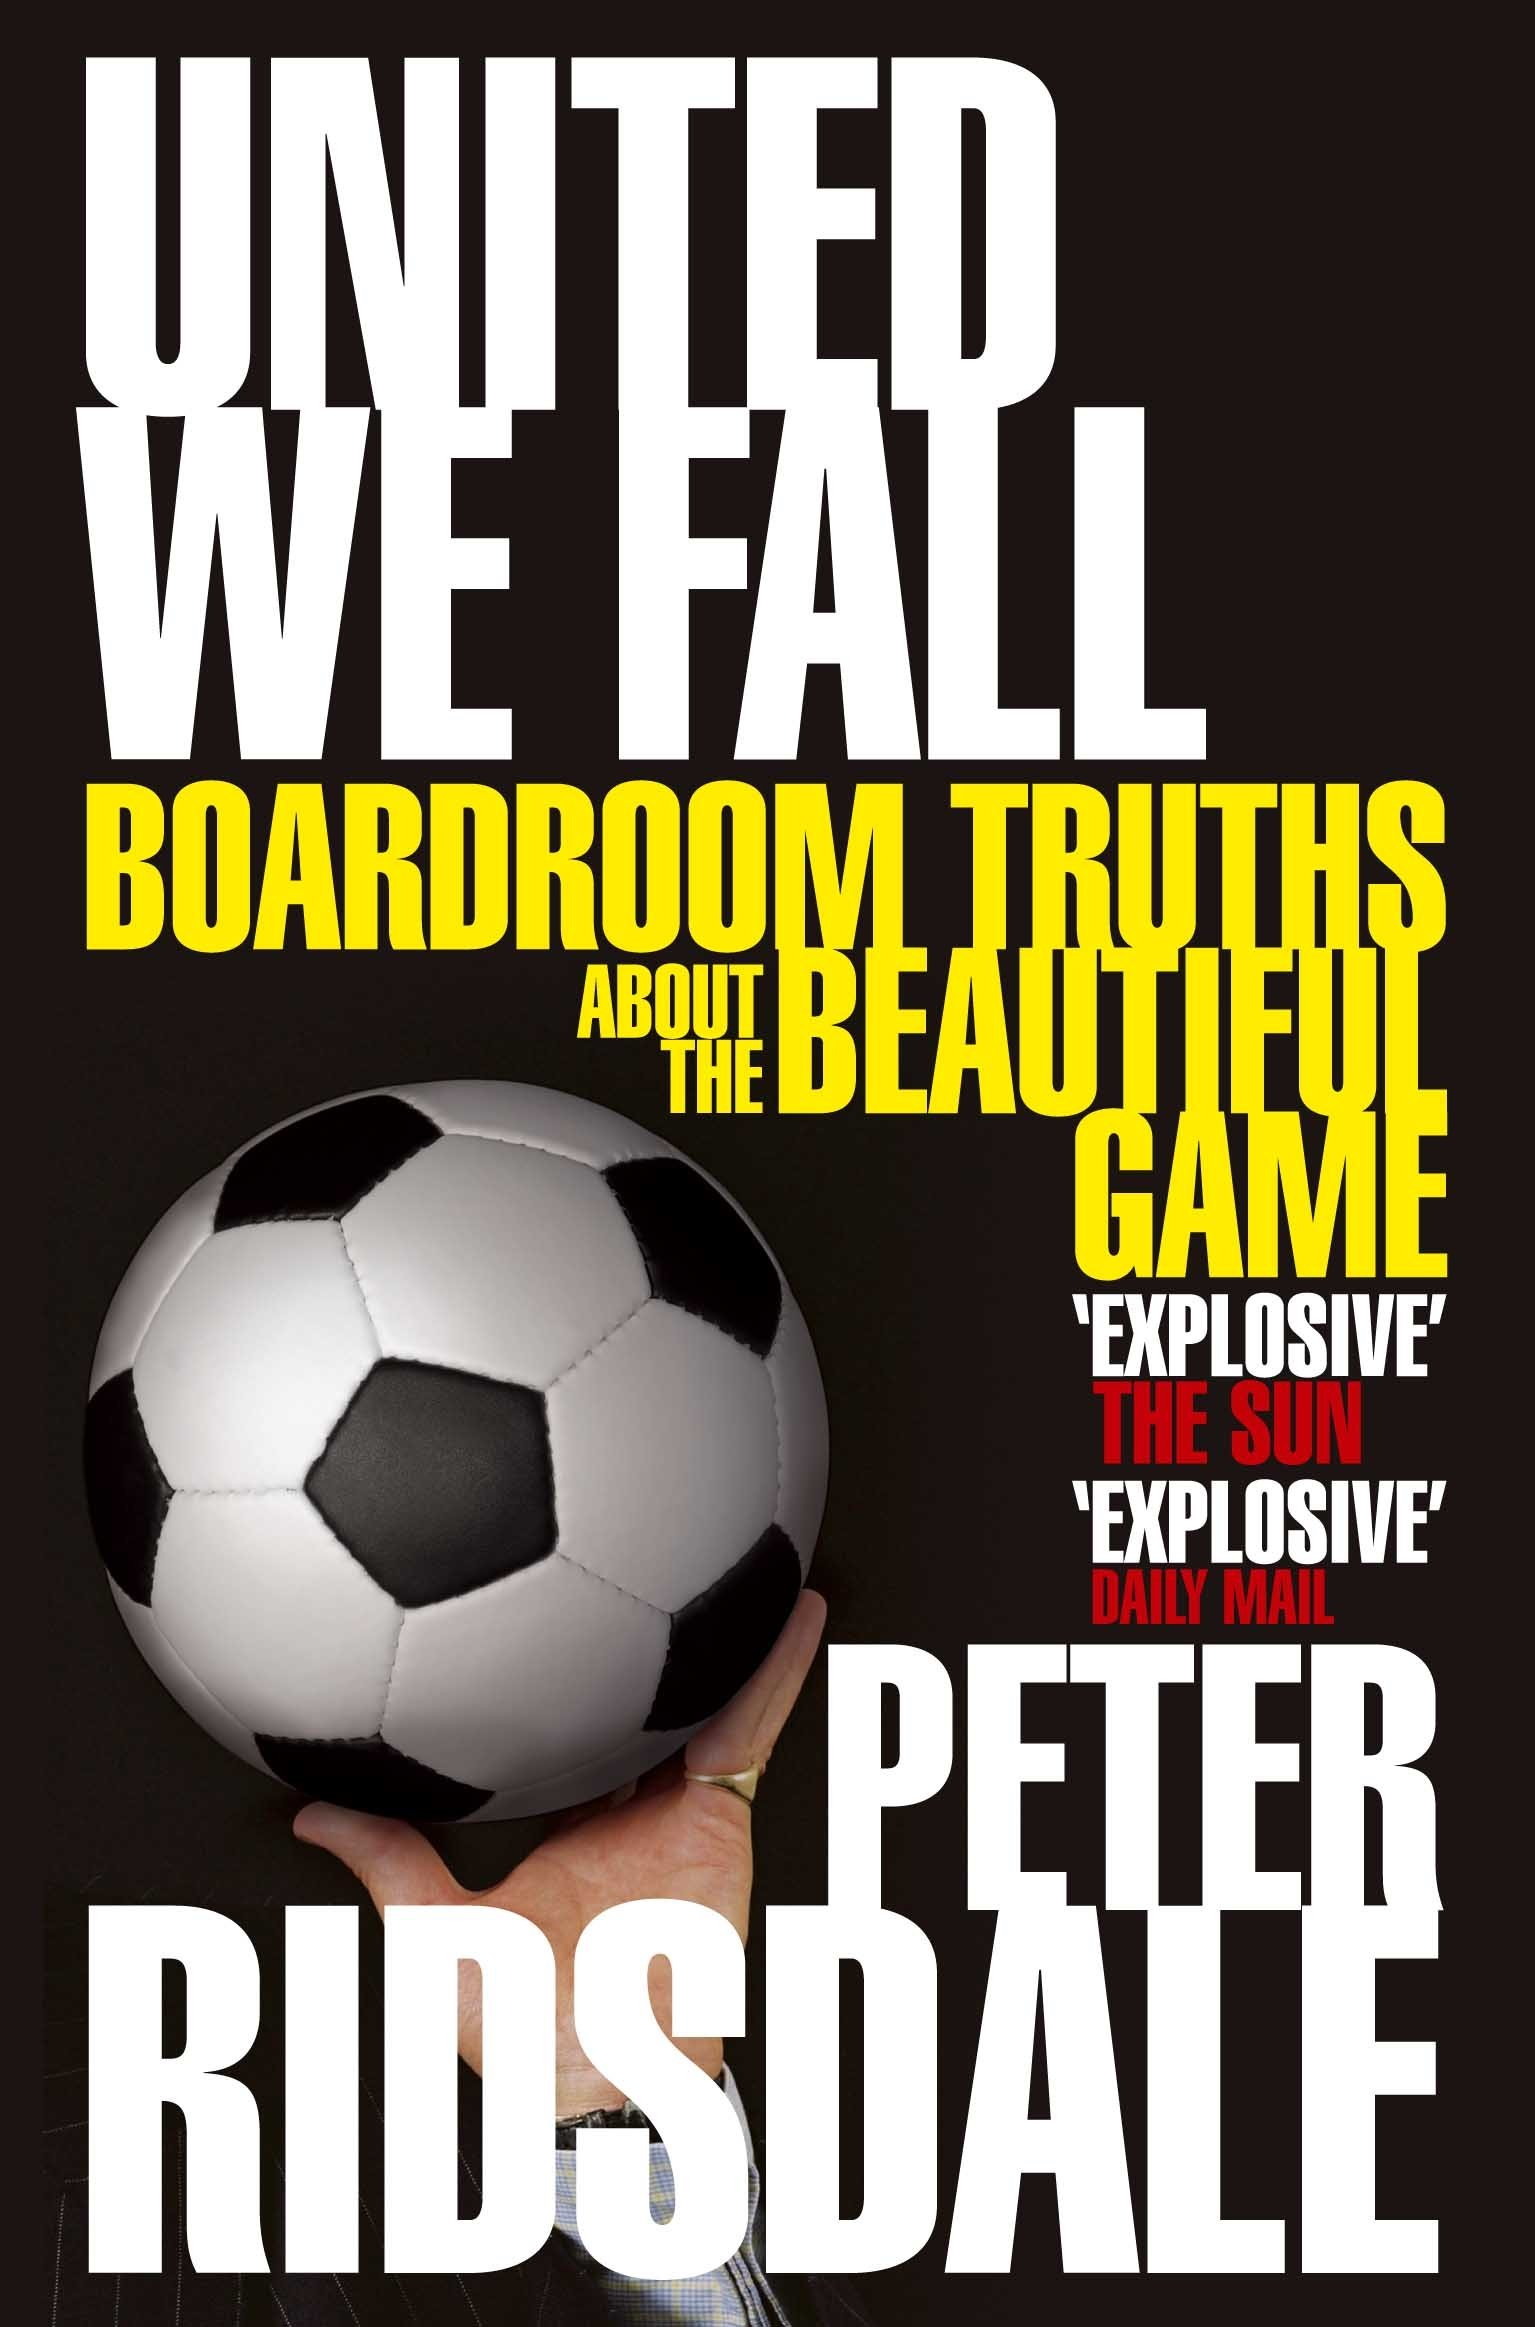 United We Fall: Boardroom Truths About the Beautiful Game